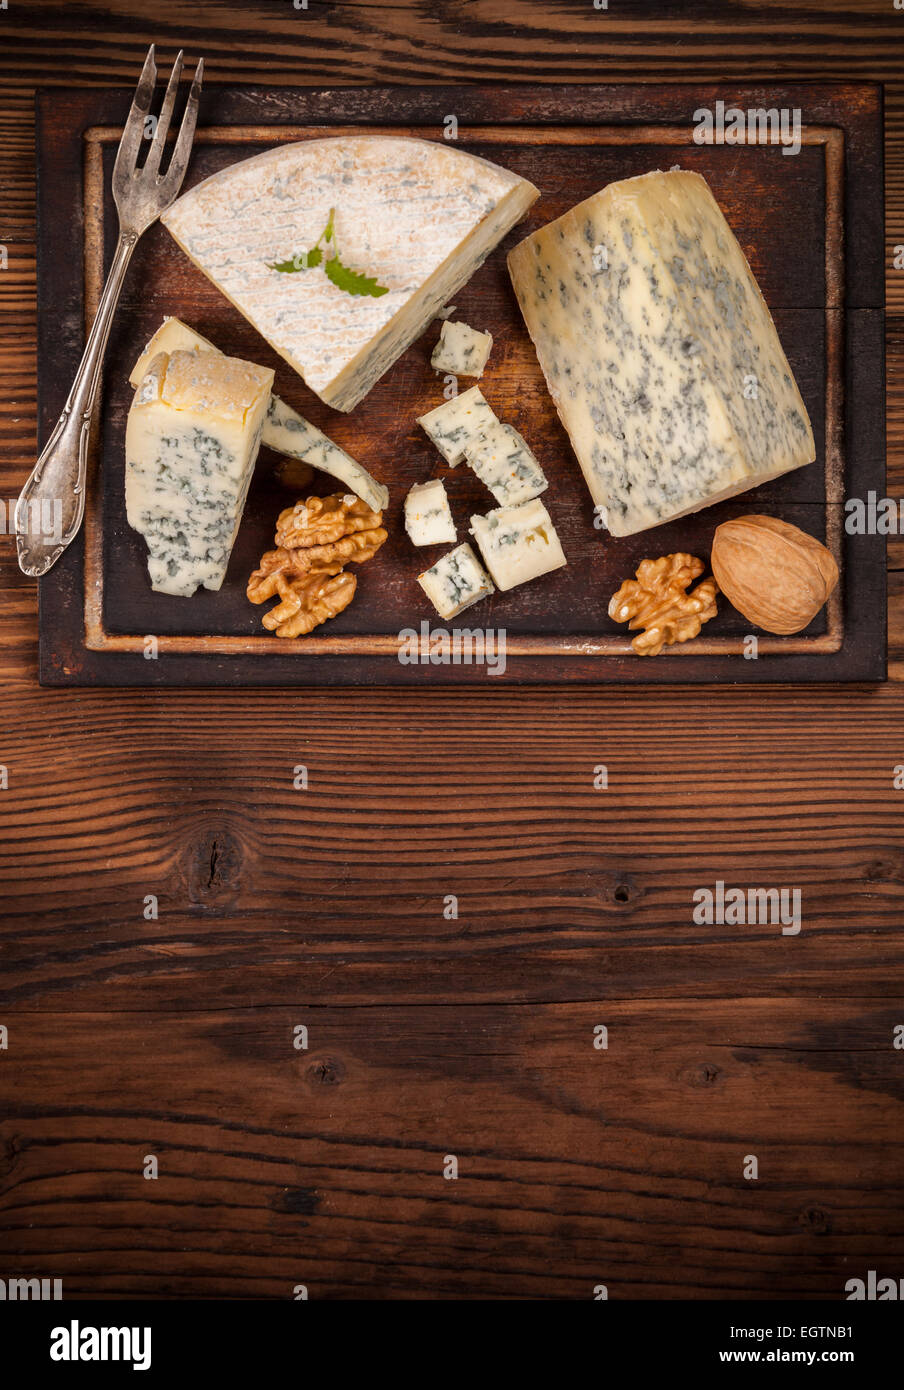 Still life of blue cheese served on wood. Shot from aerial view - Stock Image